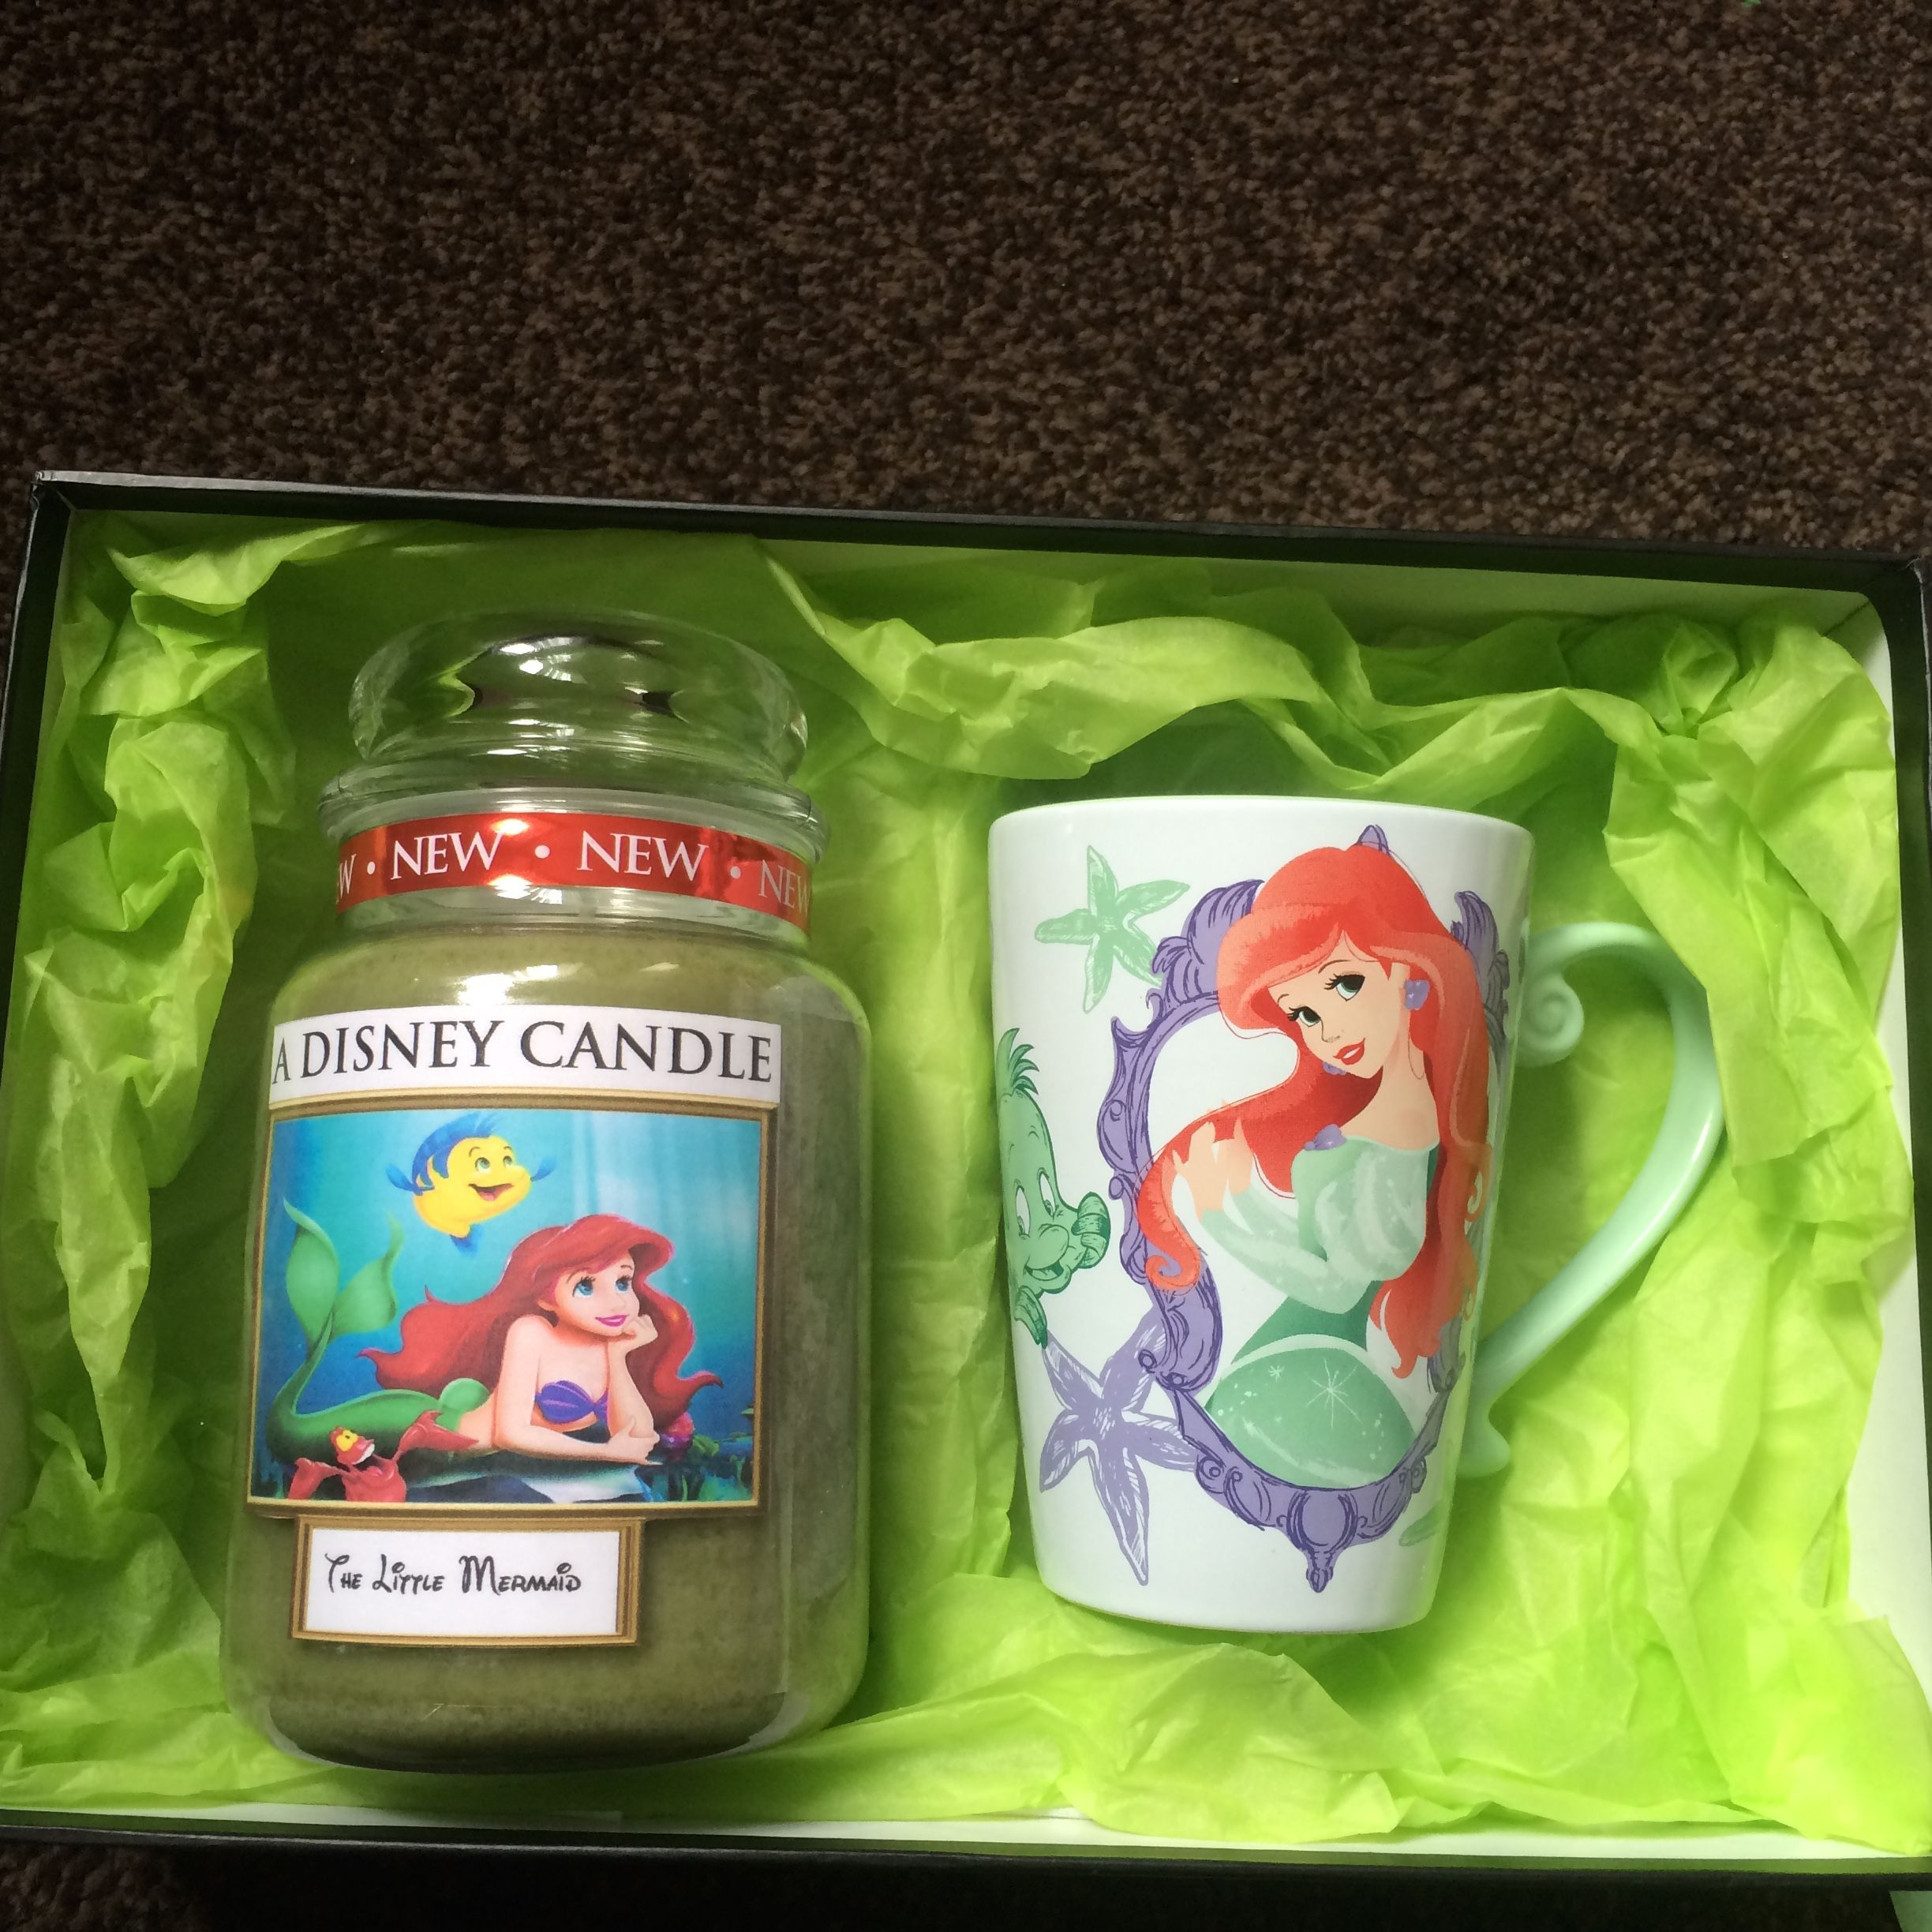 Disney The Little Mermaid Themed Yankee Candle Gift Set